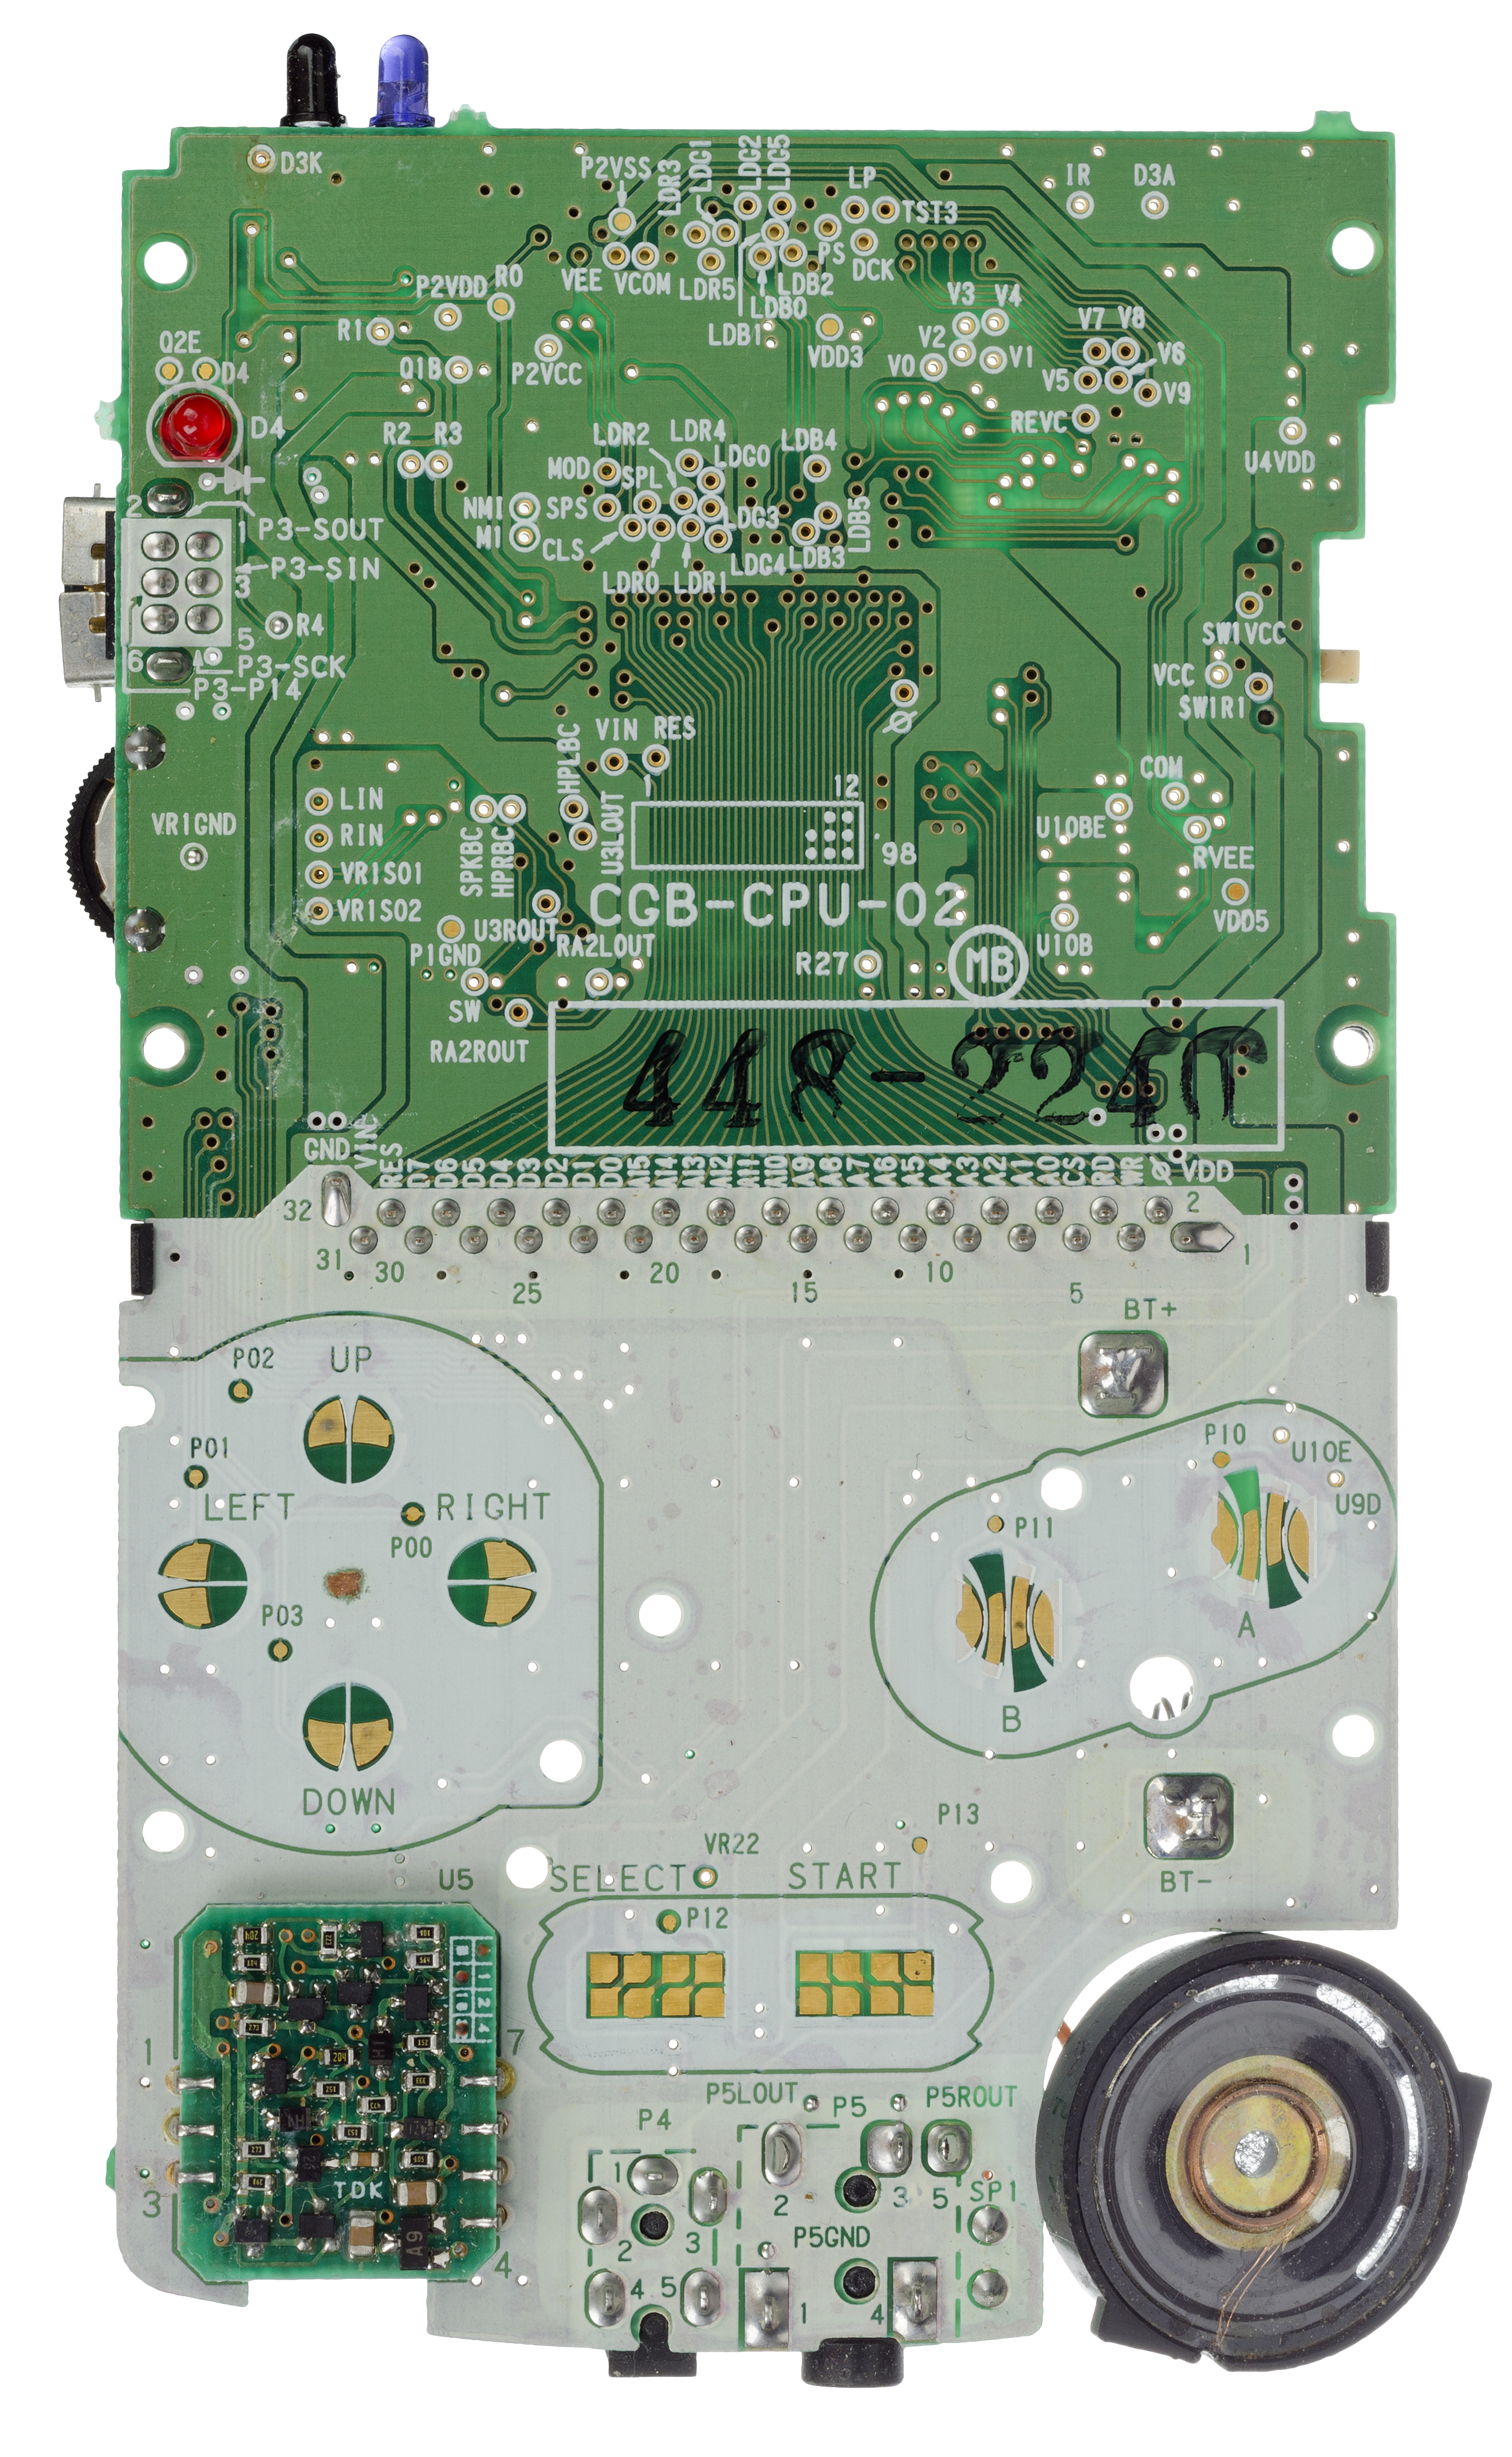 File:Nintendo-Game-Boy-Color-Motherboard-Top.jpg - Wikimedia Commons